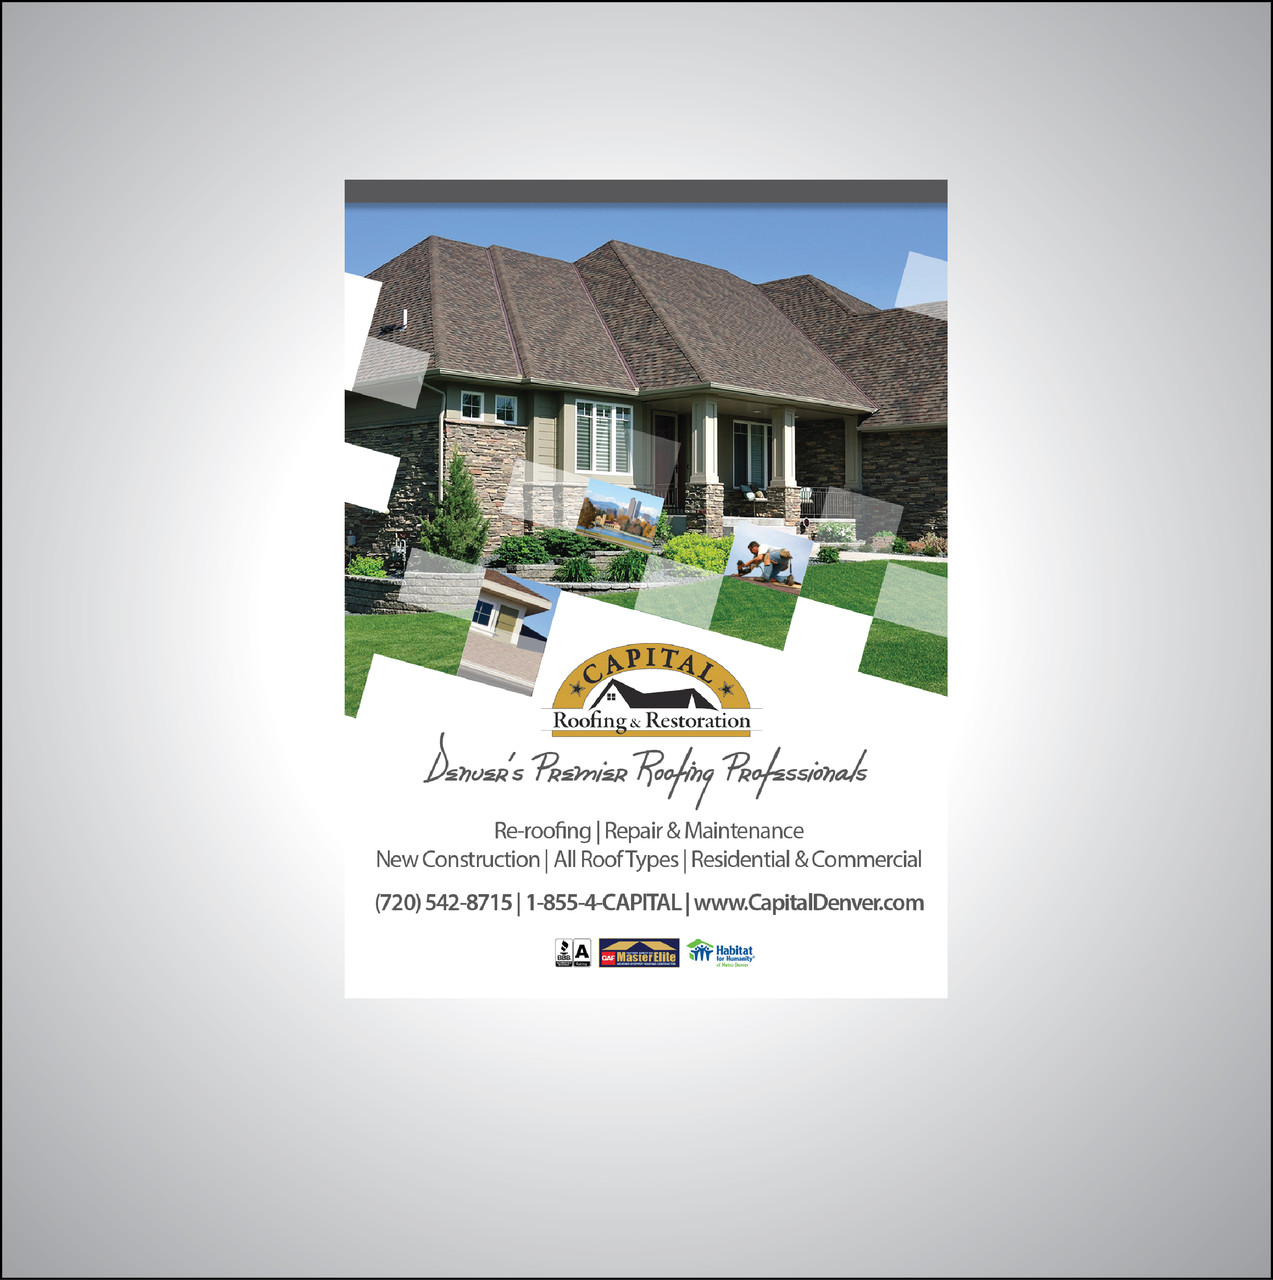 Logo and Branding/publications for Capital Roofing